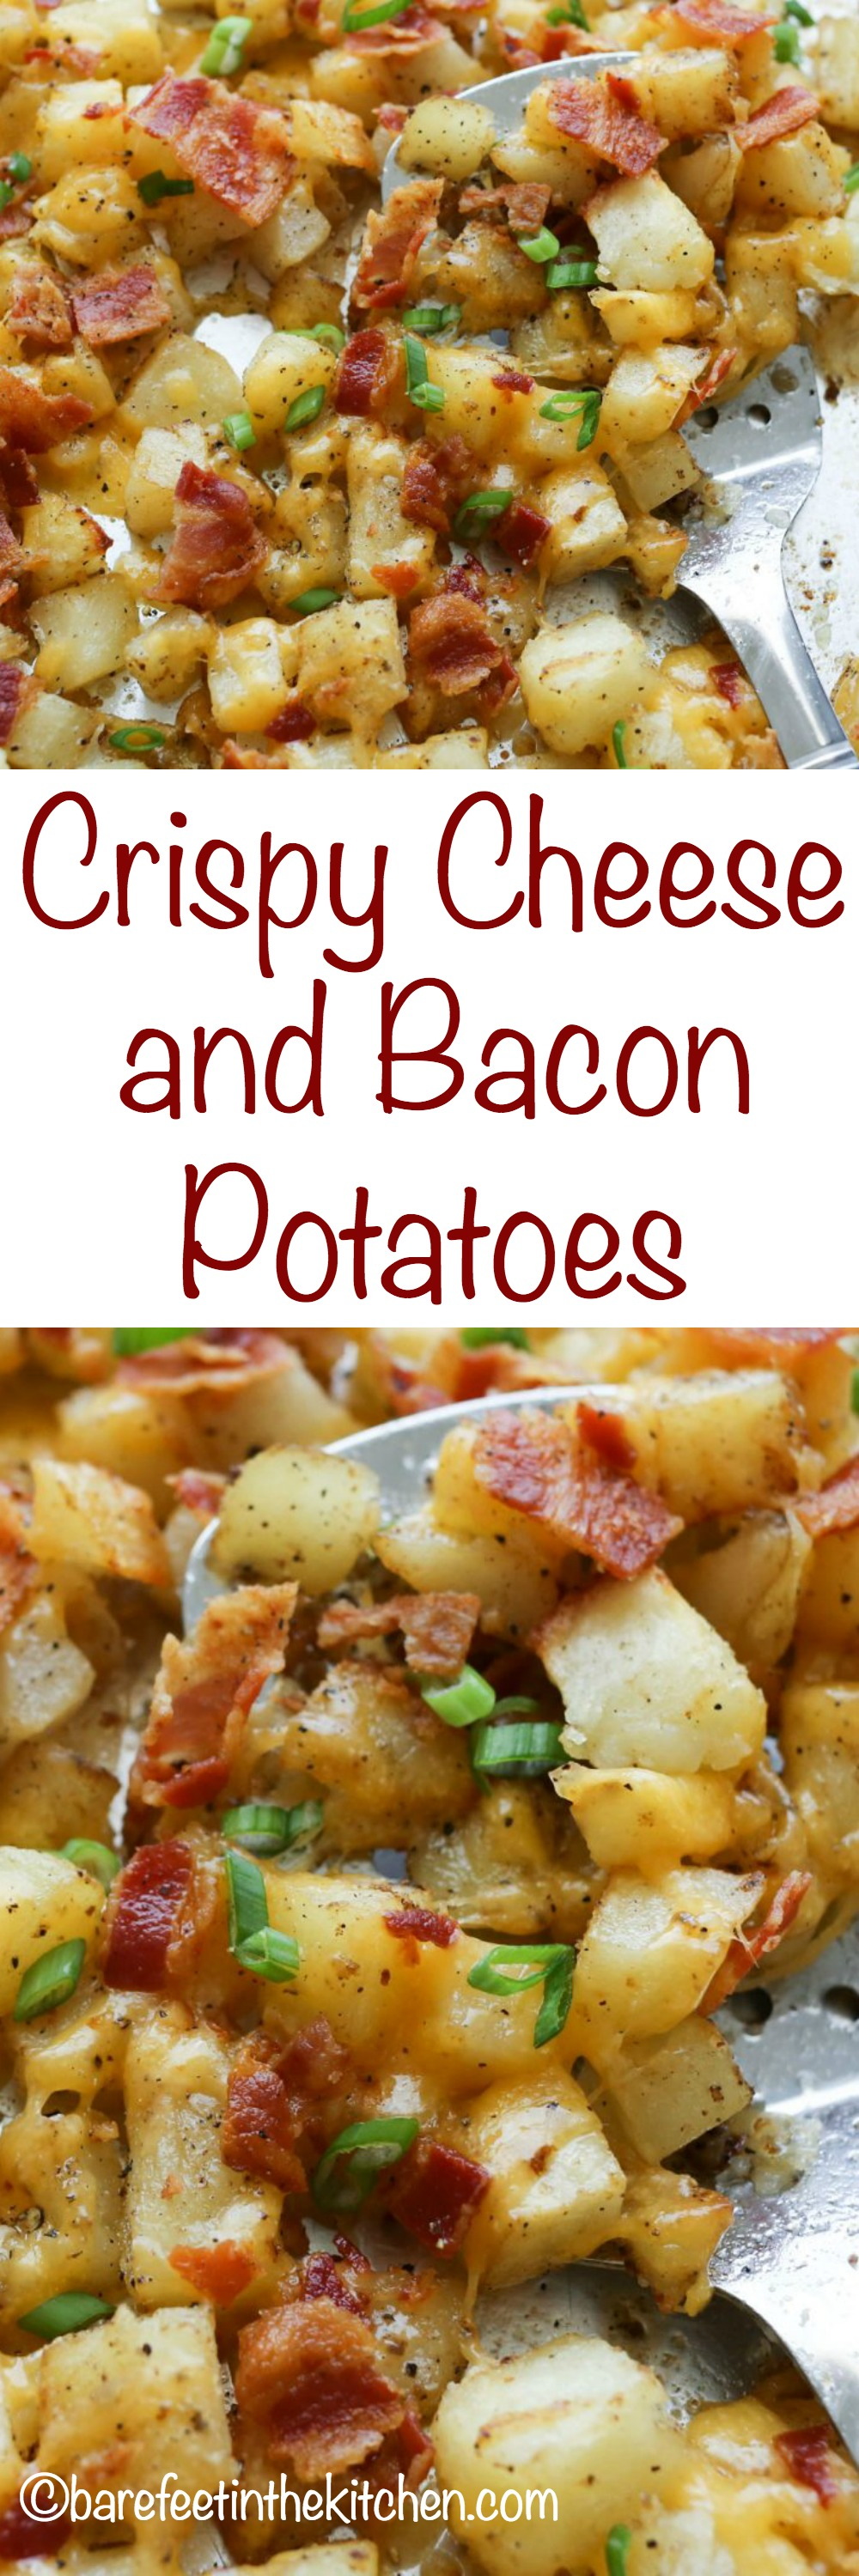 Crispy-Cheese-and-Bacon-Potatoes-are-great-for-breakfast-lunch-or-dinner-get-the-recipe-at-barefe-wallpaper-wp3404273